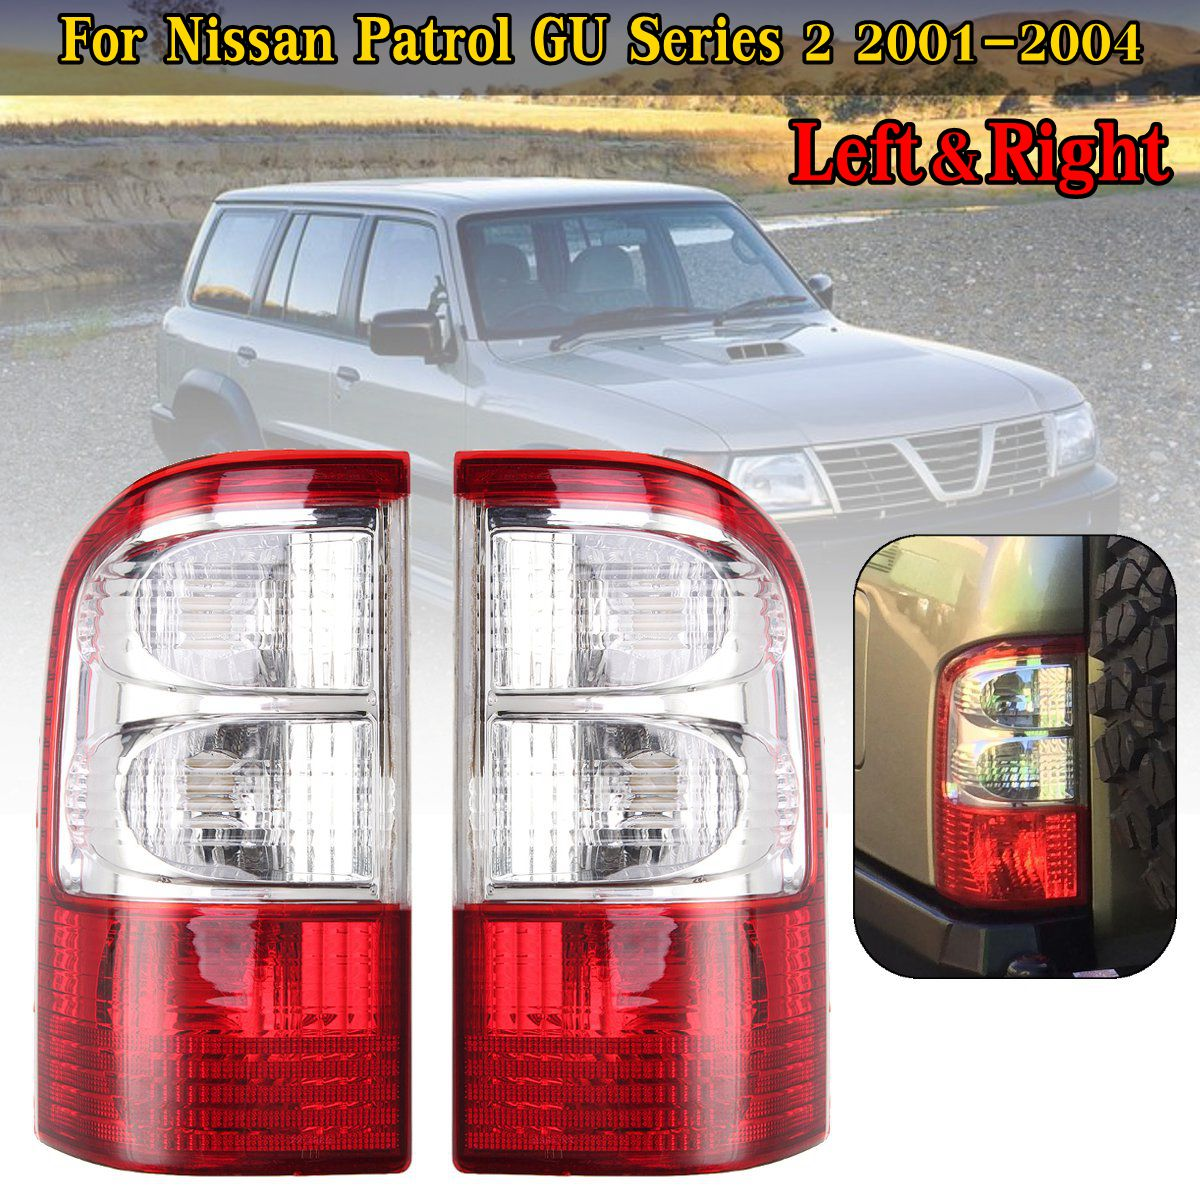 12 V Rear Tail Light For Nissan Patrol GU Series 2 2001 2002 2003 2004 Brake Lamp ABS Tail Light Lamp Without Wire Harness